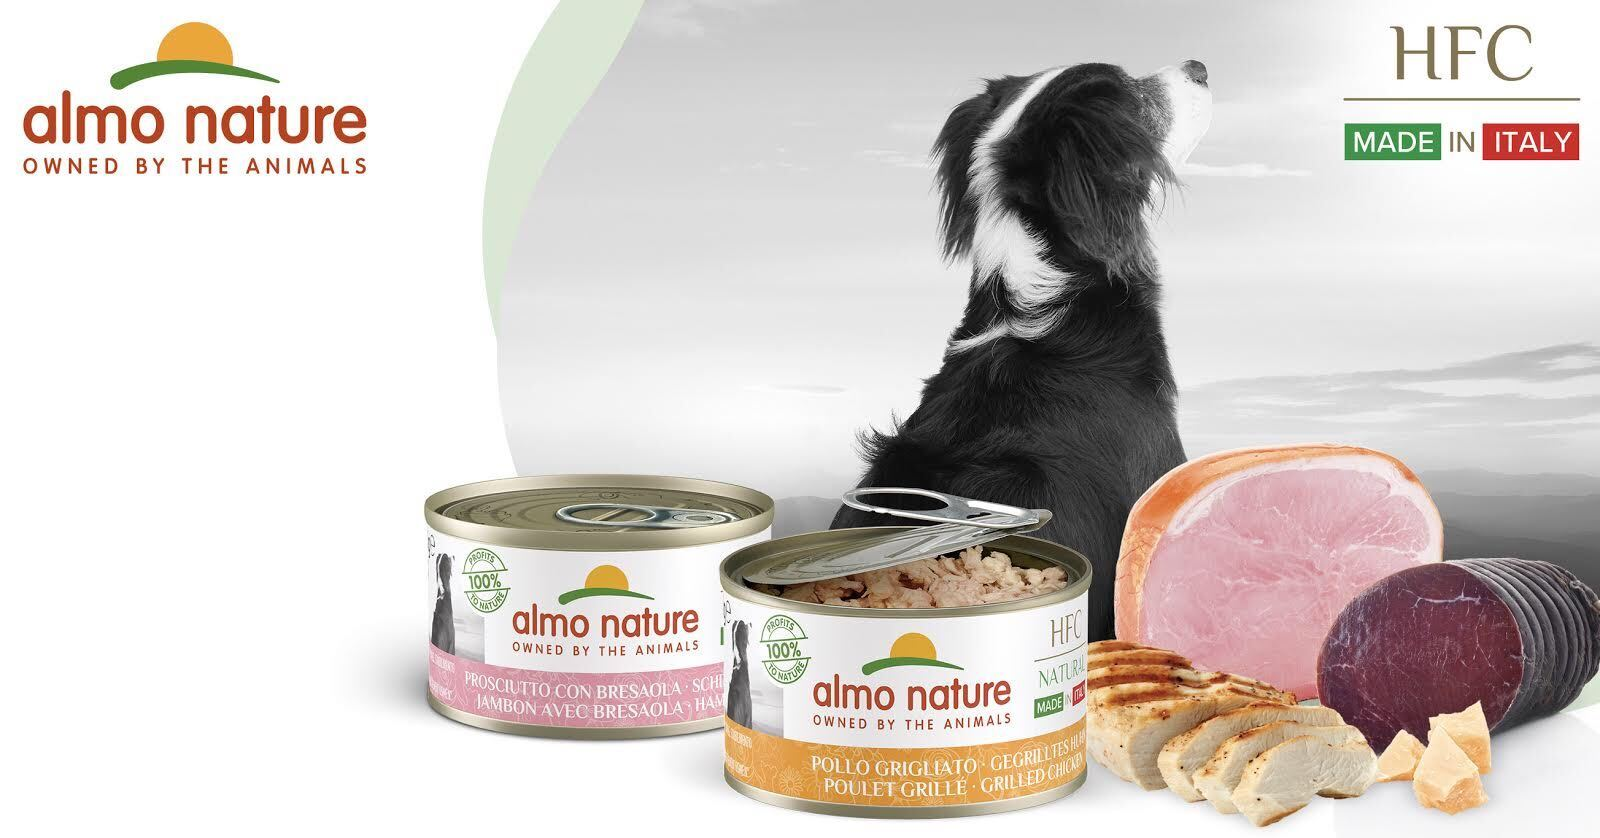 almo-nature-made-in-italy-dog